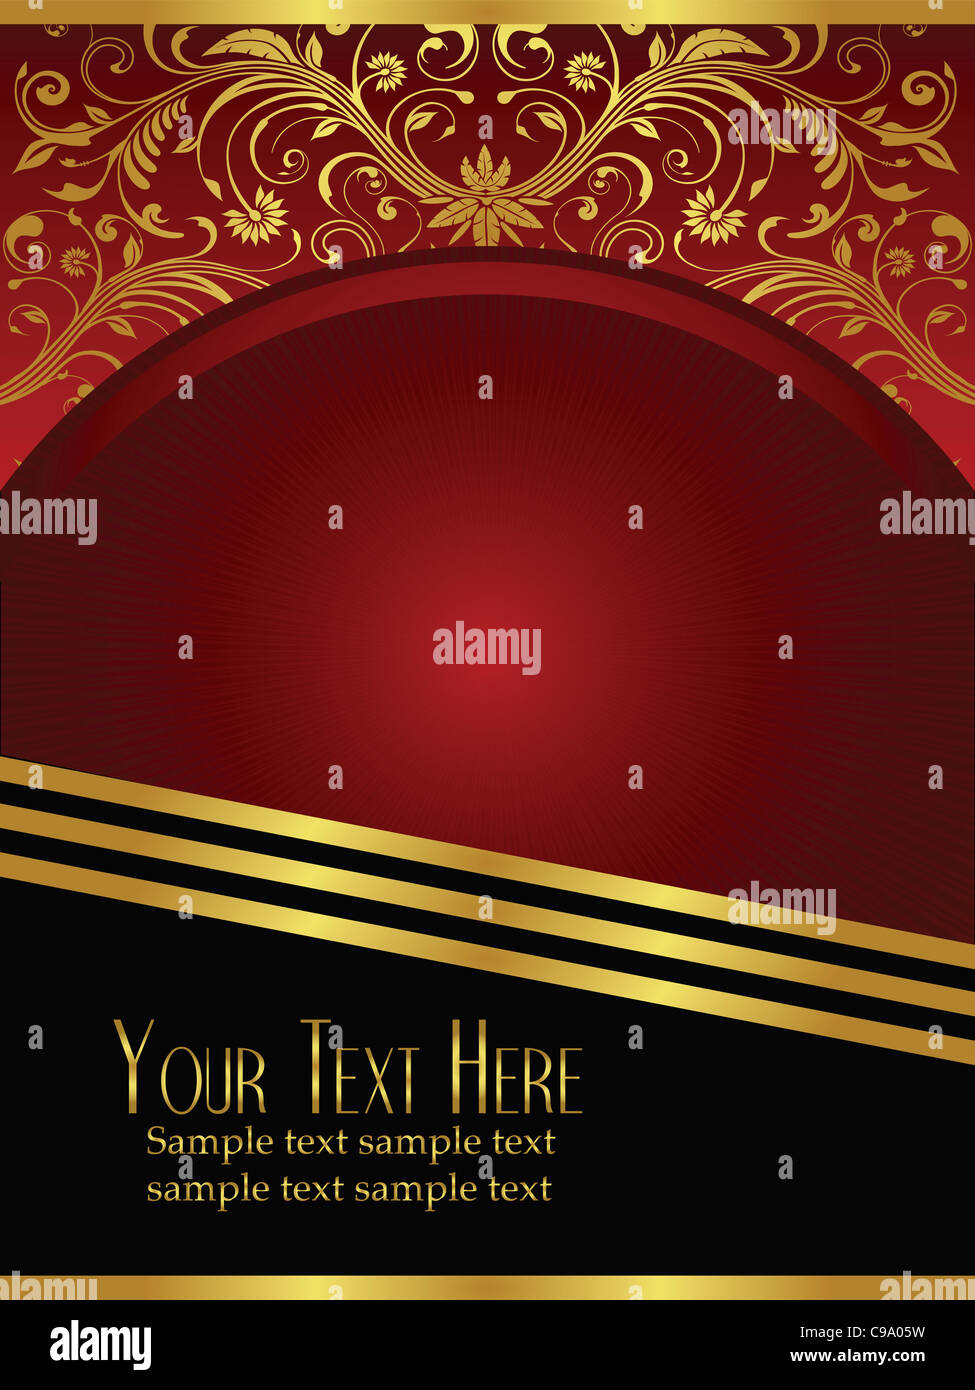 An elegant royal burgundy background vector with ornate gold lead design elements. - Stock Image